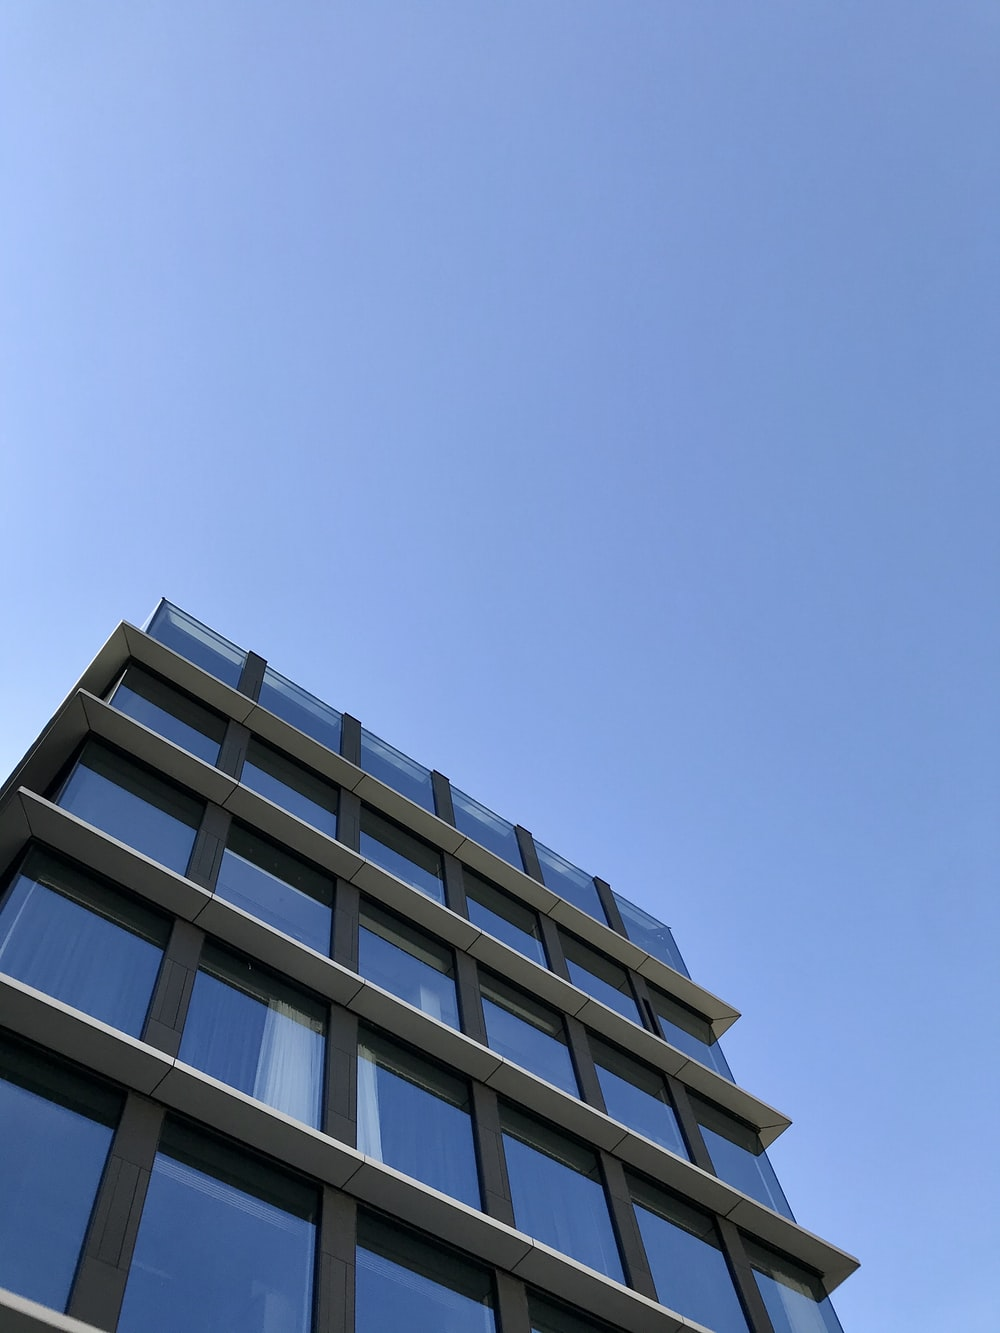 low-angle photography of blue glass walled building